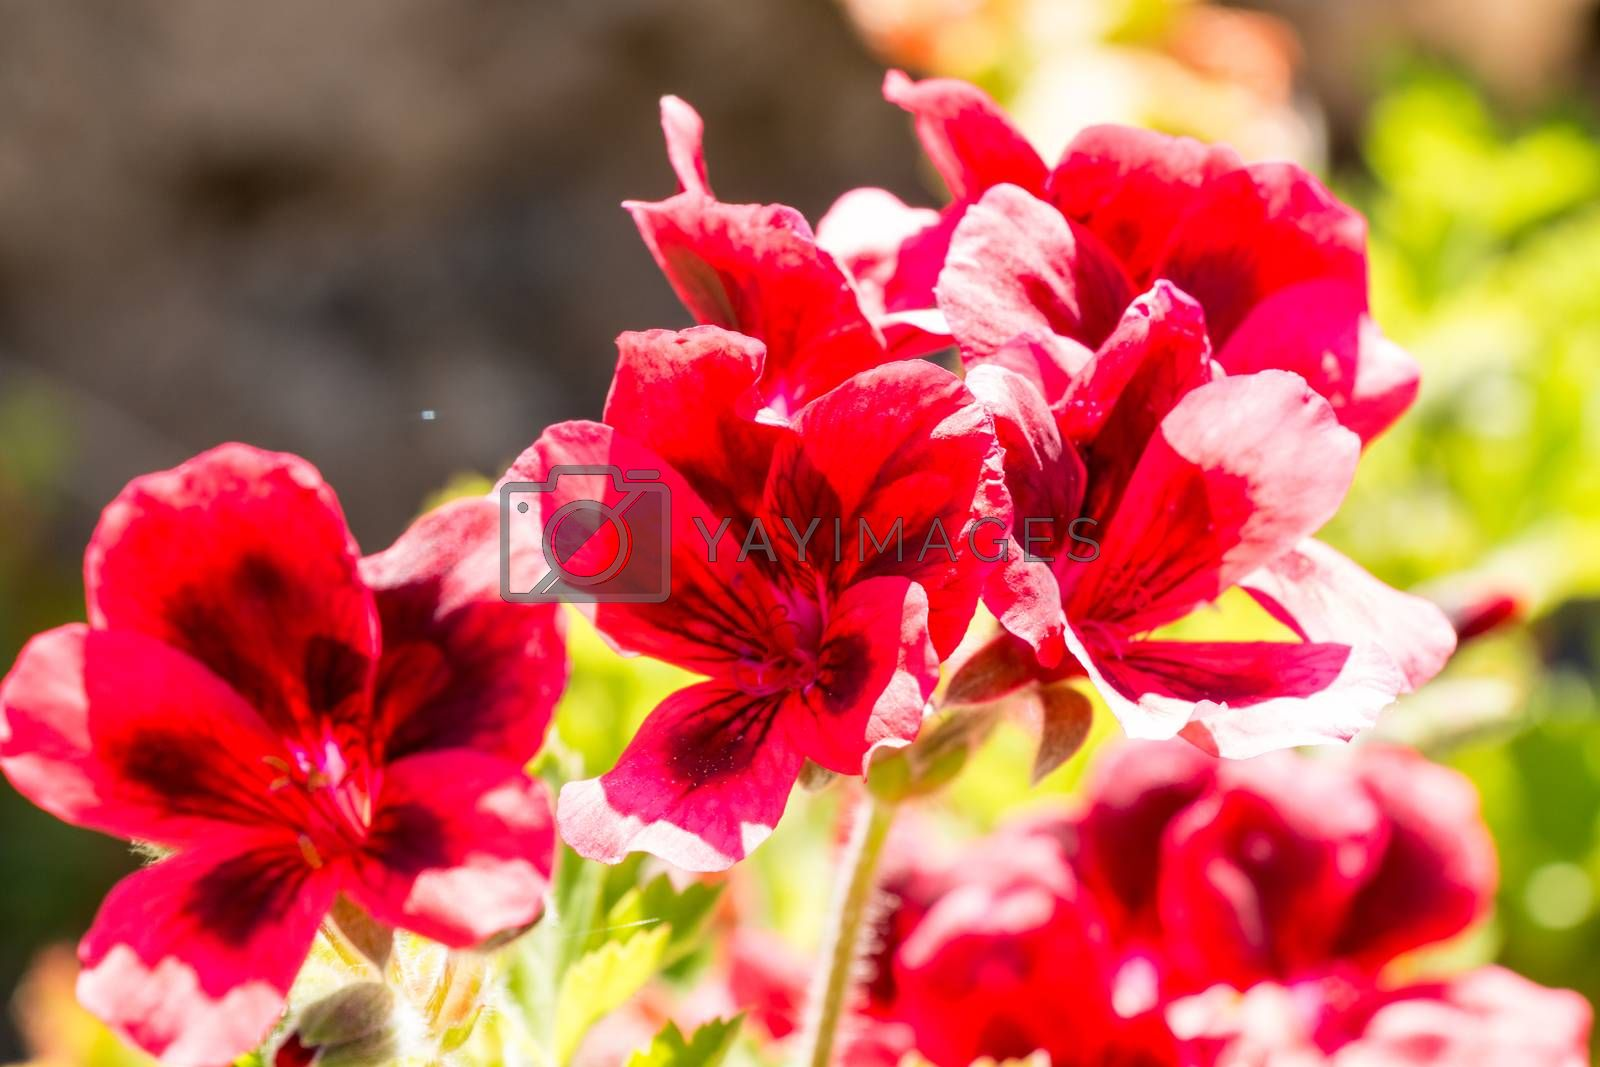 Red flowers with black spots